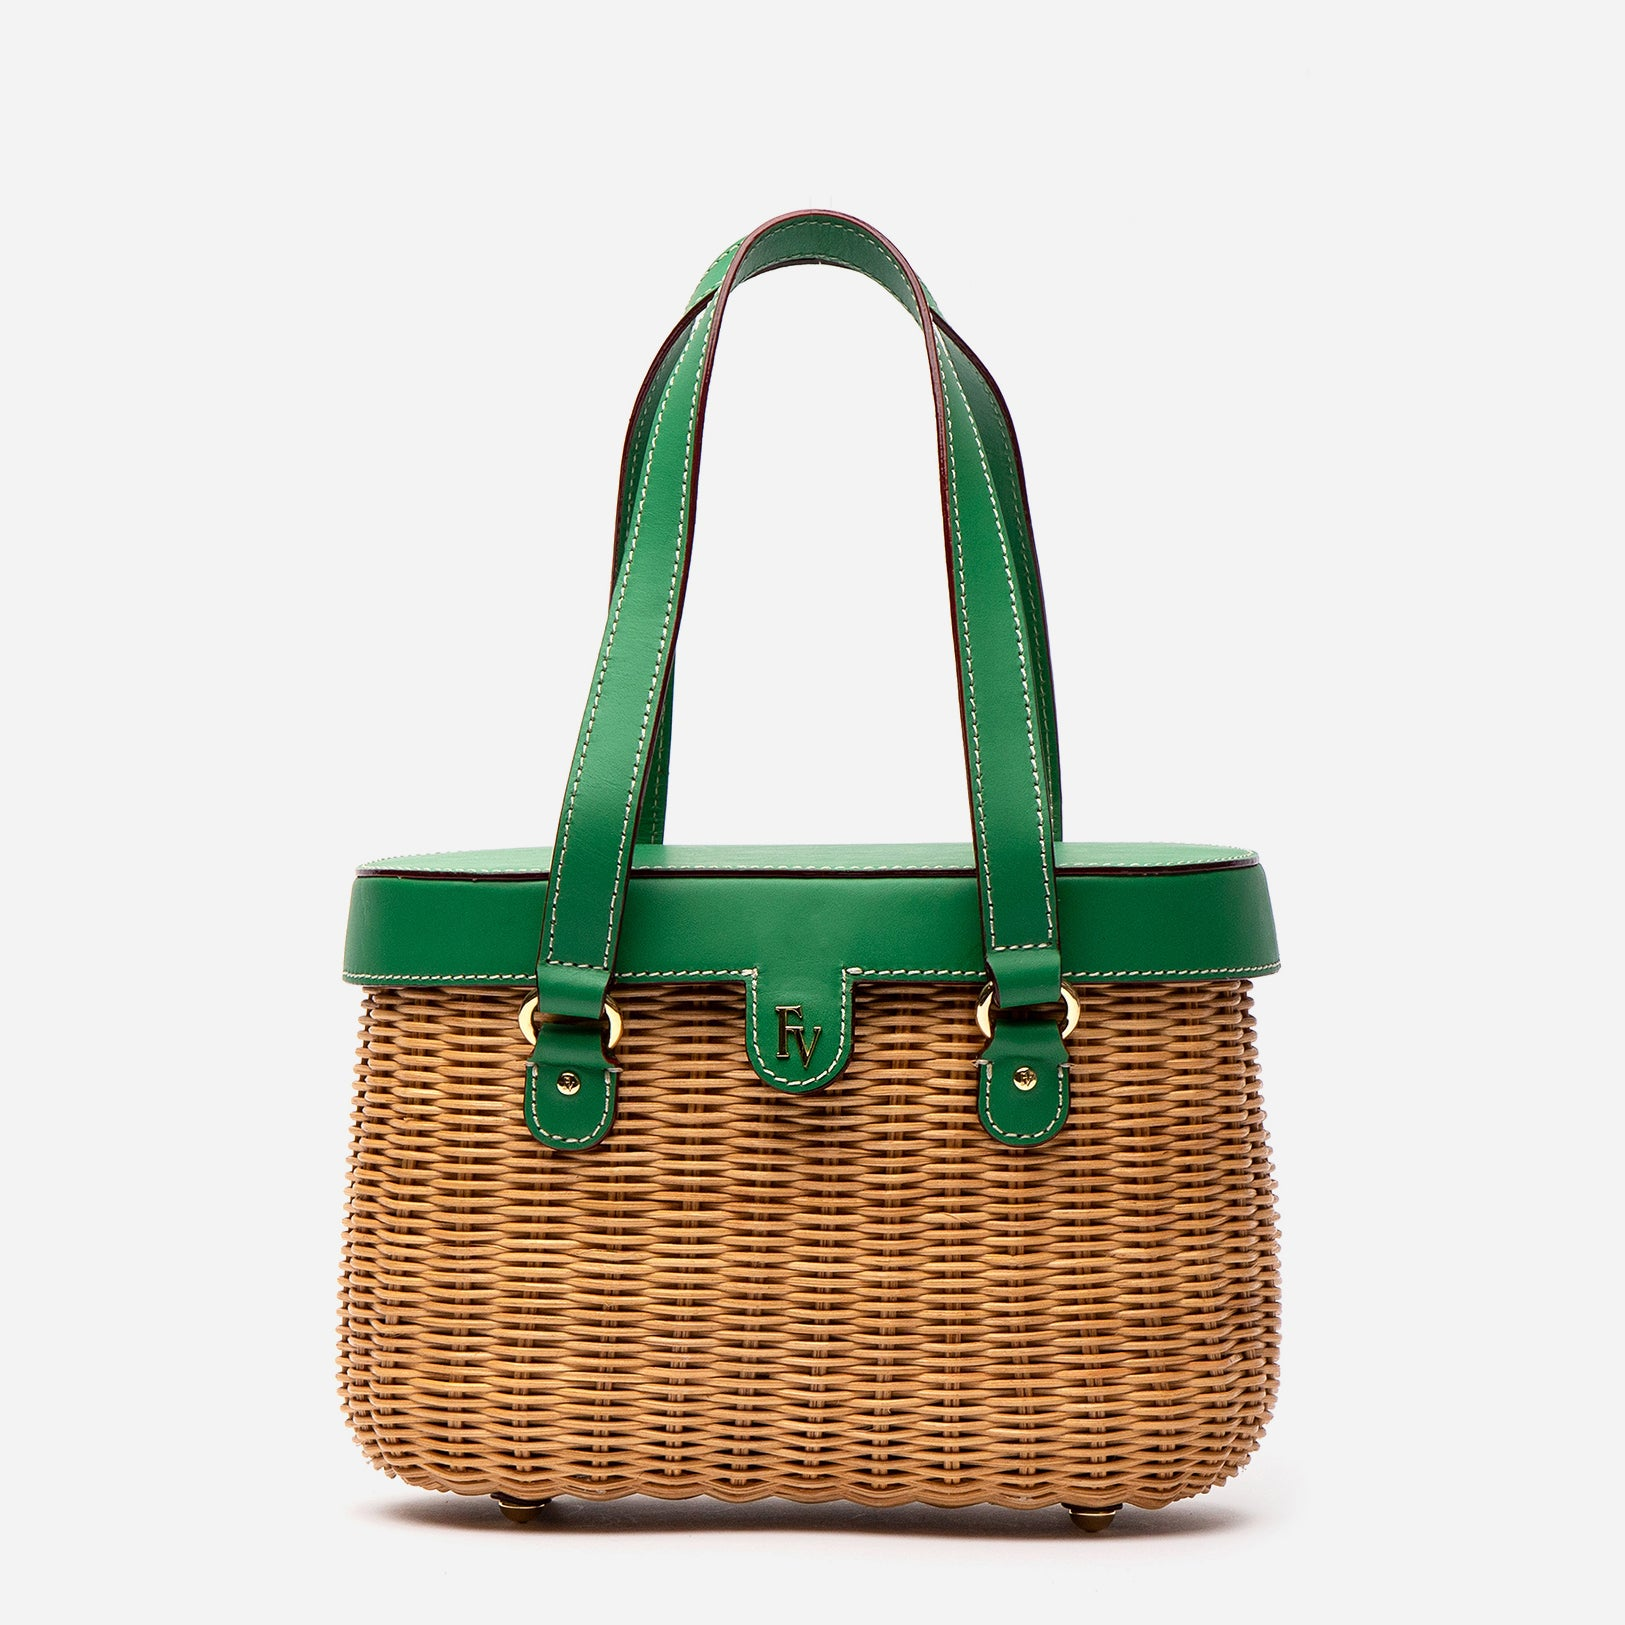 Arielle Wicker Basket Green Ray